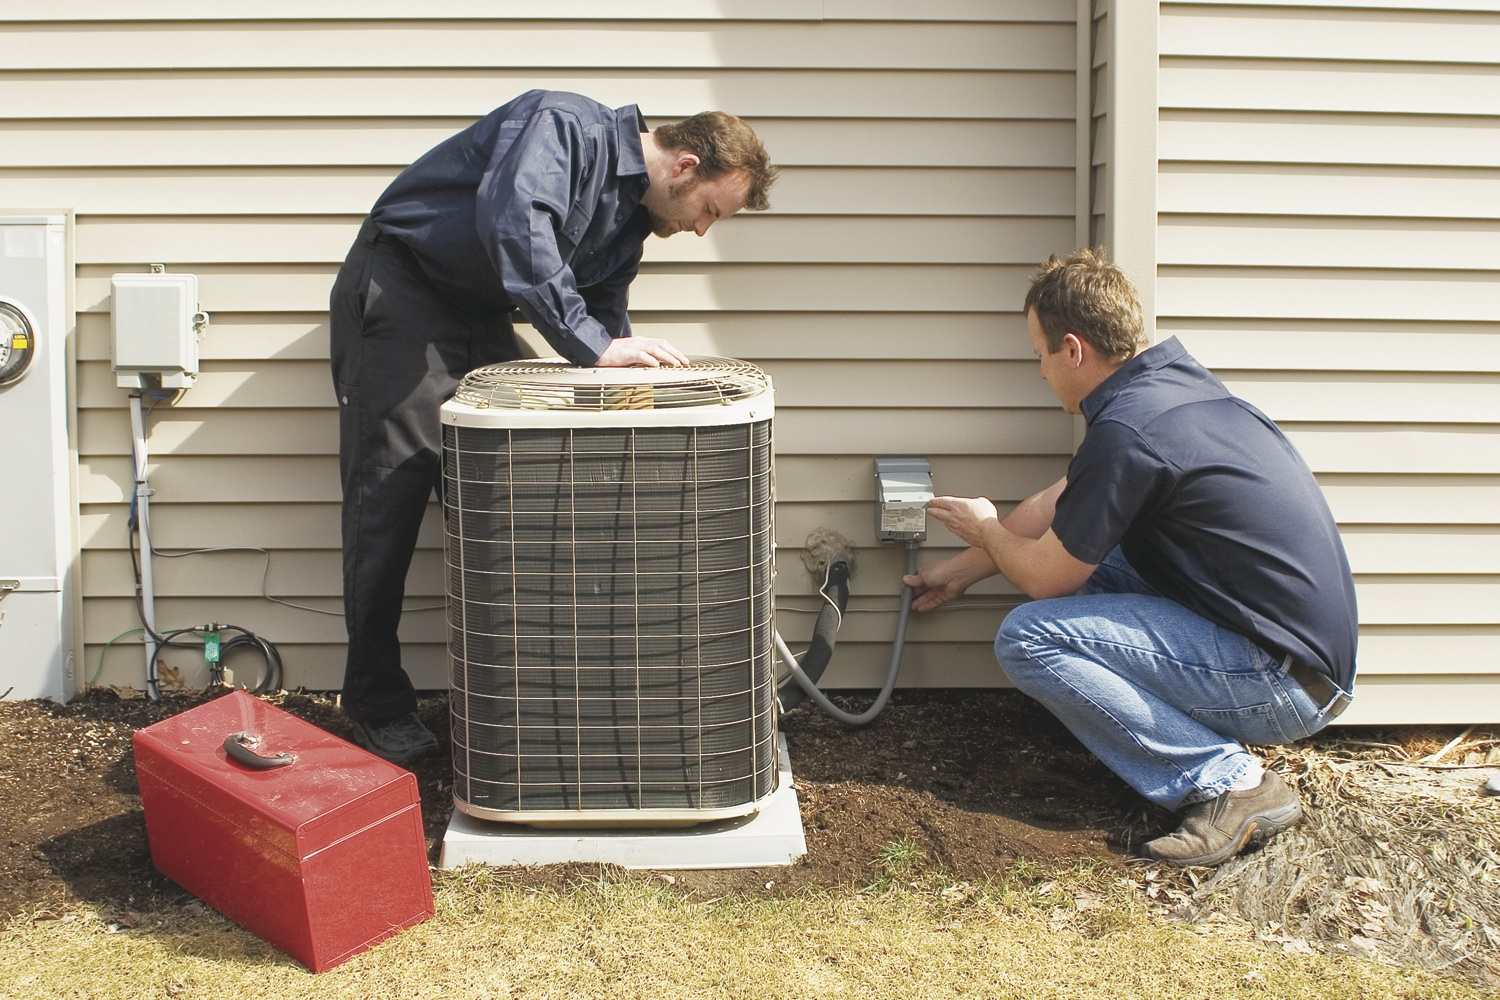 Searching For An HVAC Contractor? Here's What You Need To Know